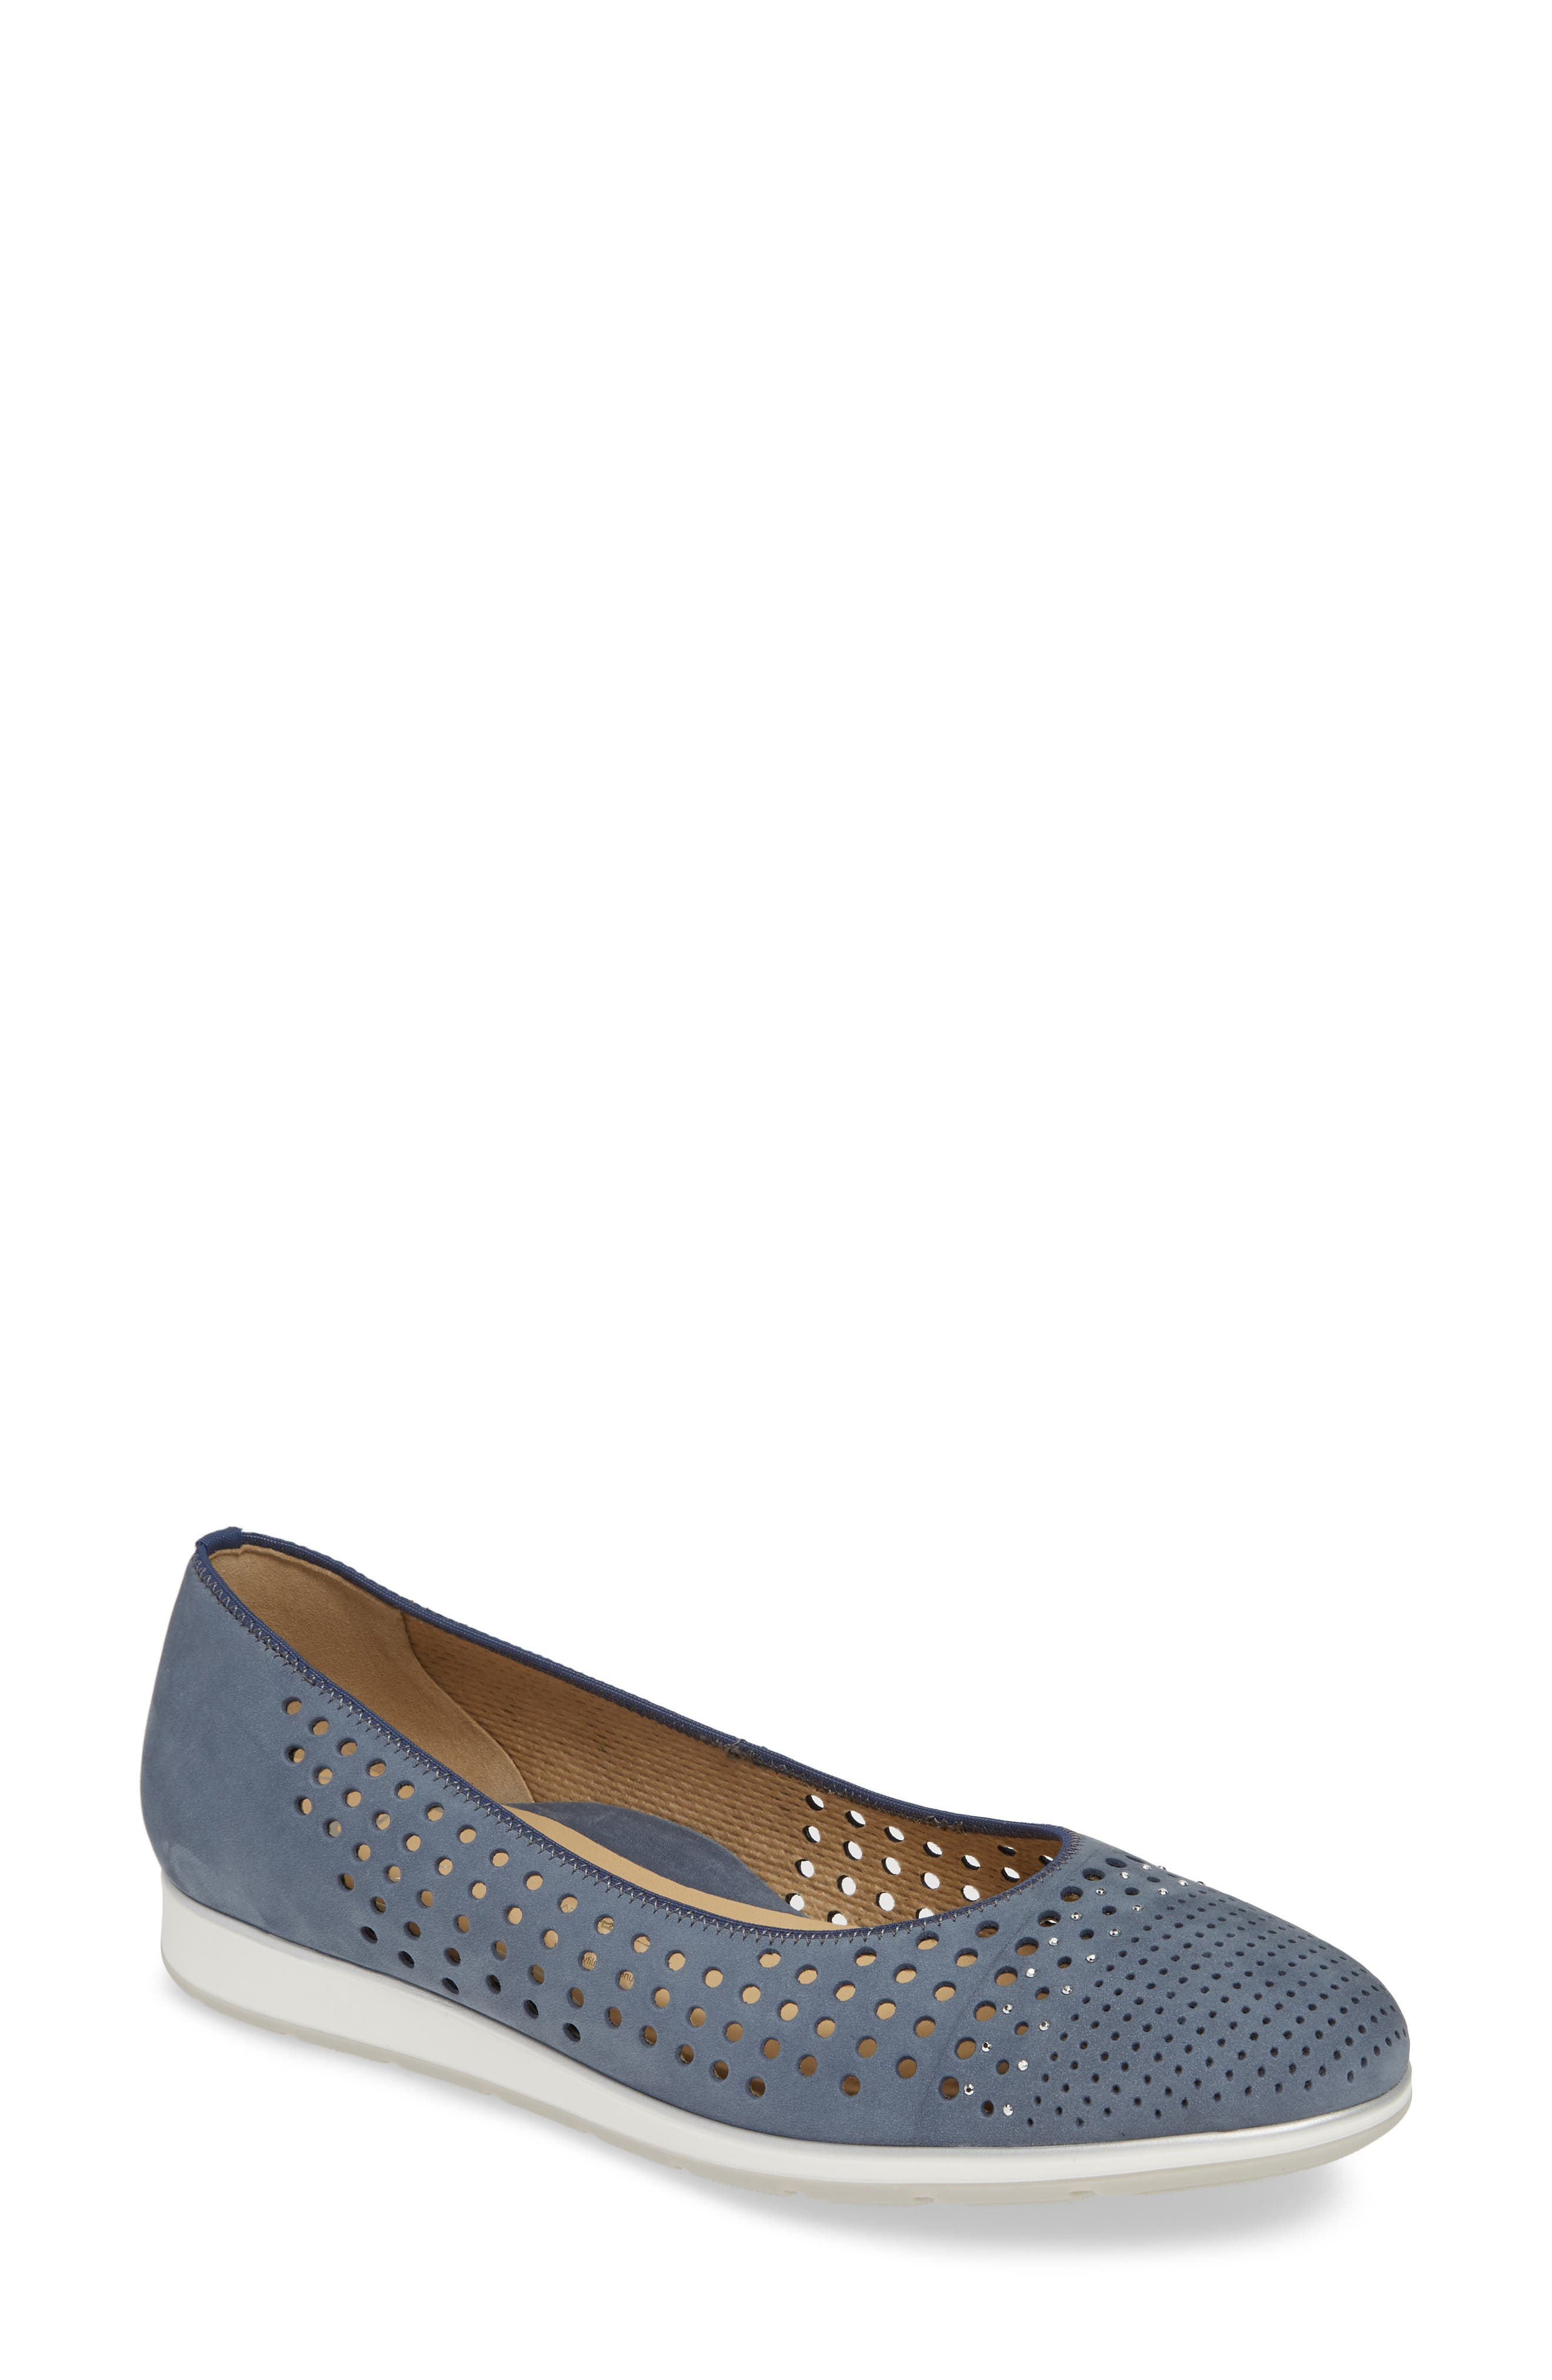 A perforated upper adds breathability and sophistication to a crystal-studded flat grounded by a signature cushioned footbed. Style Name: Ara Shea Flat (Women). Style Number: 5818799. Available in stores.